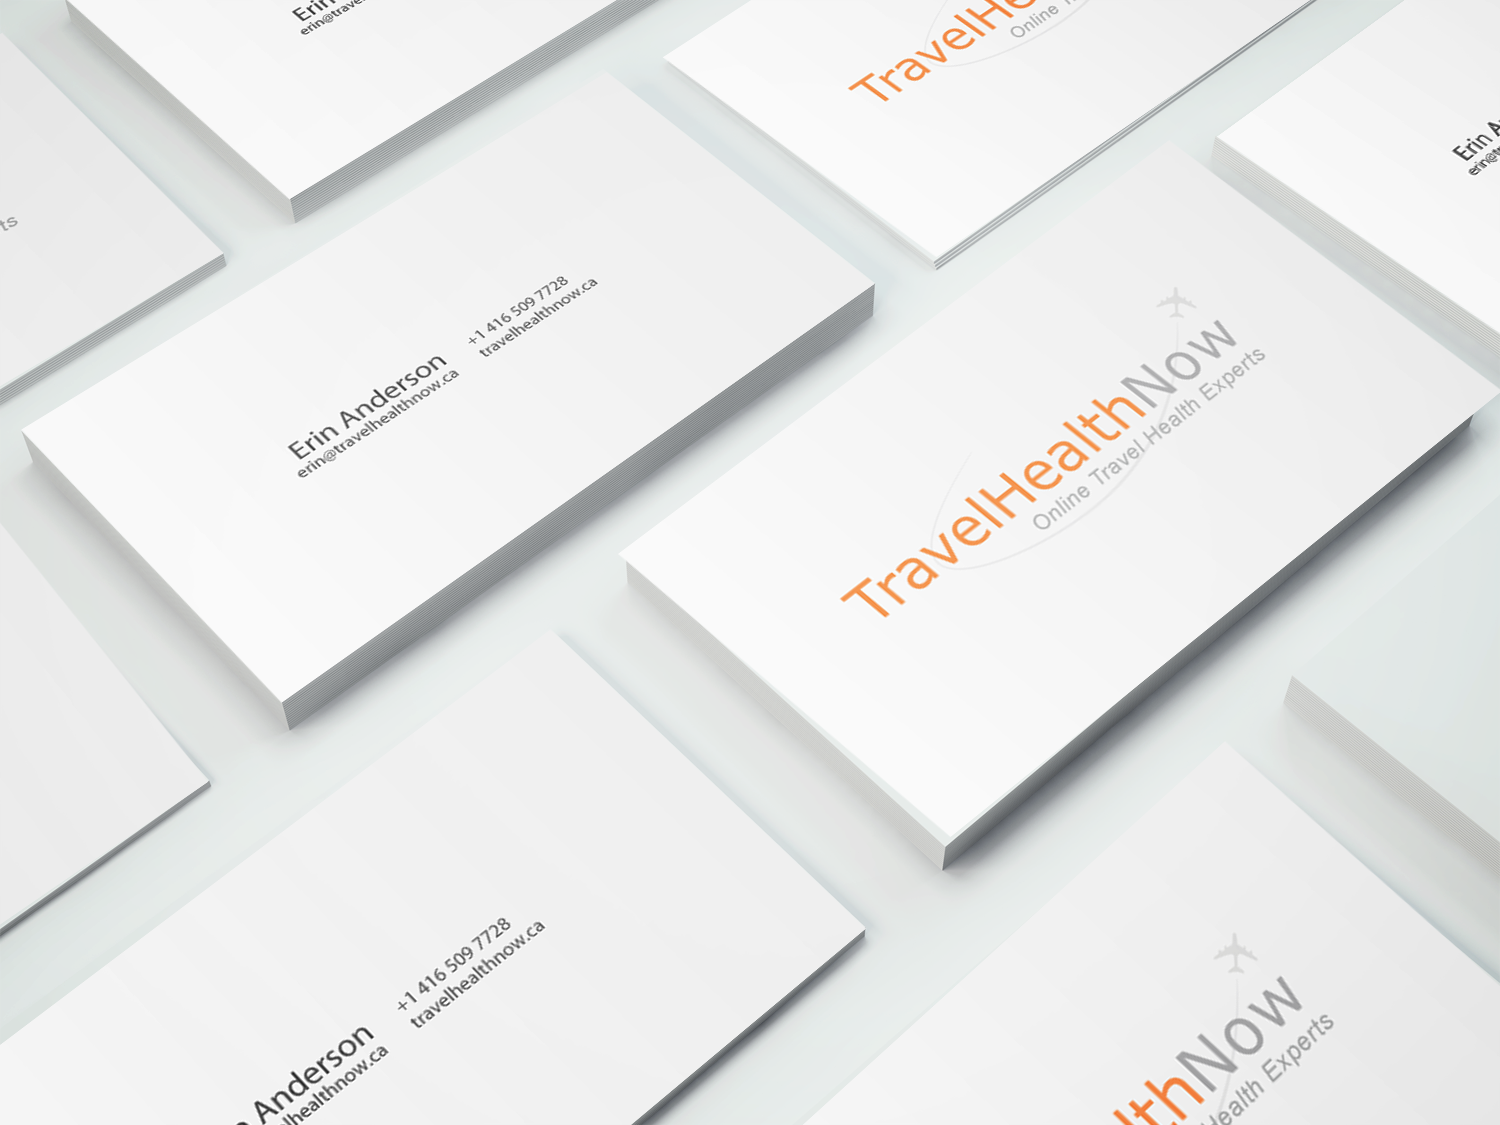 Modern personable business business card design for drugsmart business card design by chandrayaaneative for drugsmart pharmacy group design 17634365 reheart Gallery